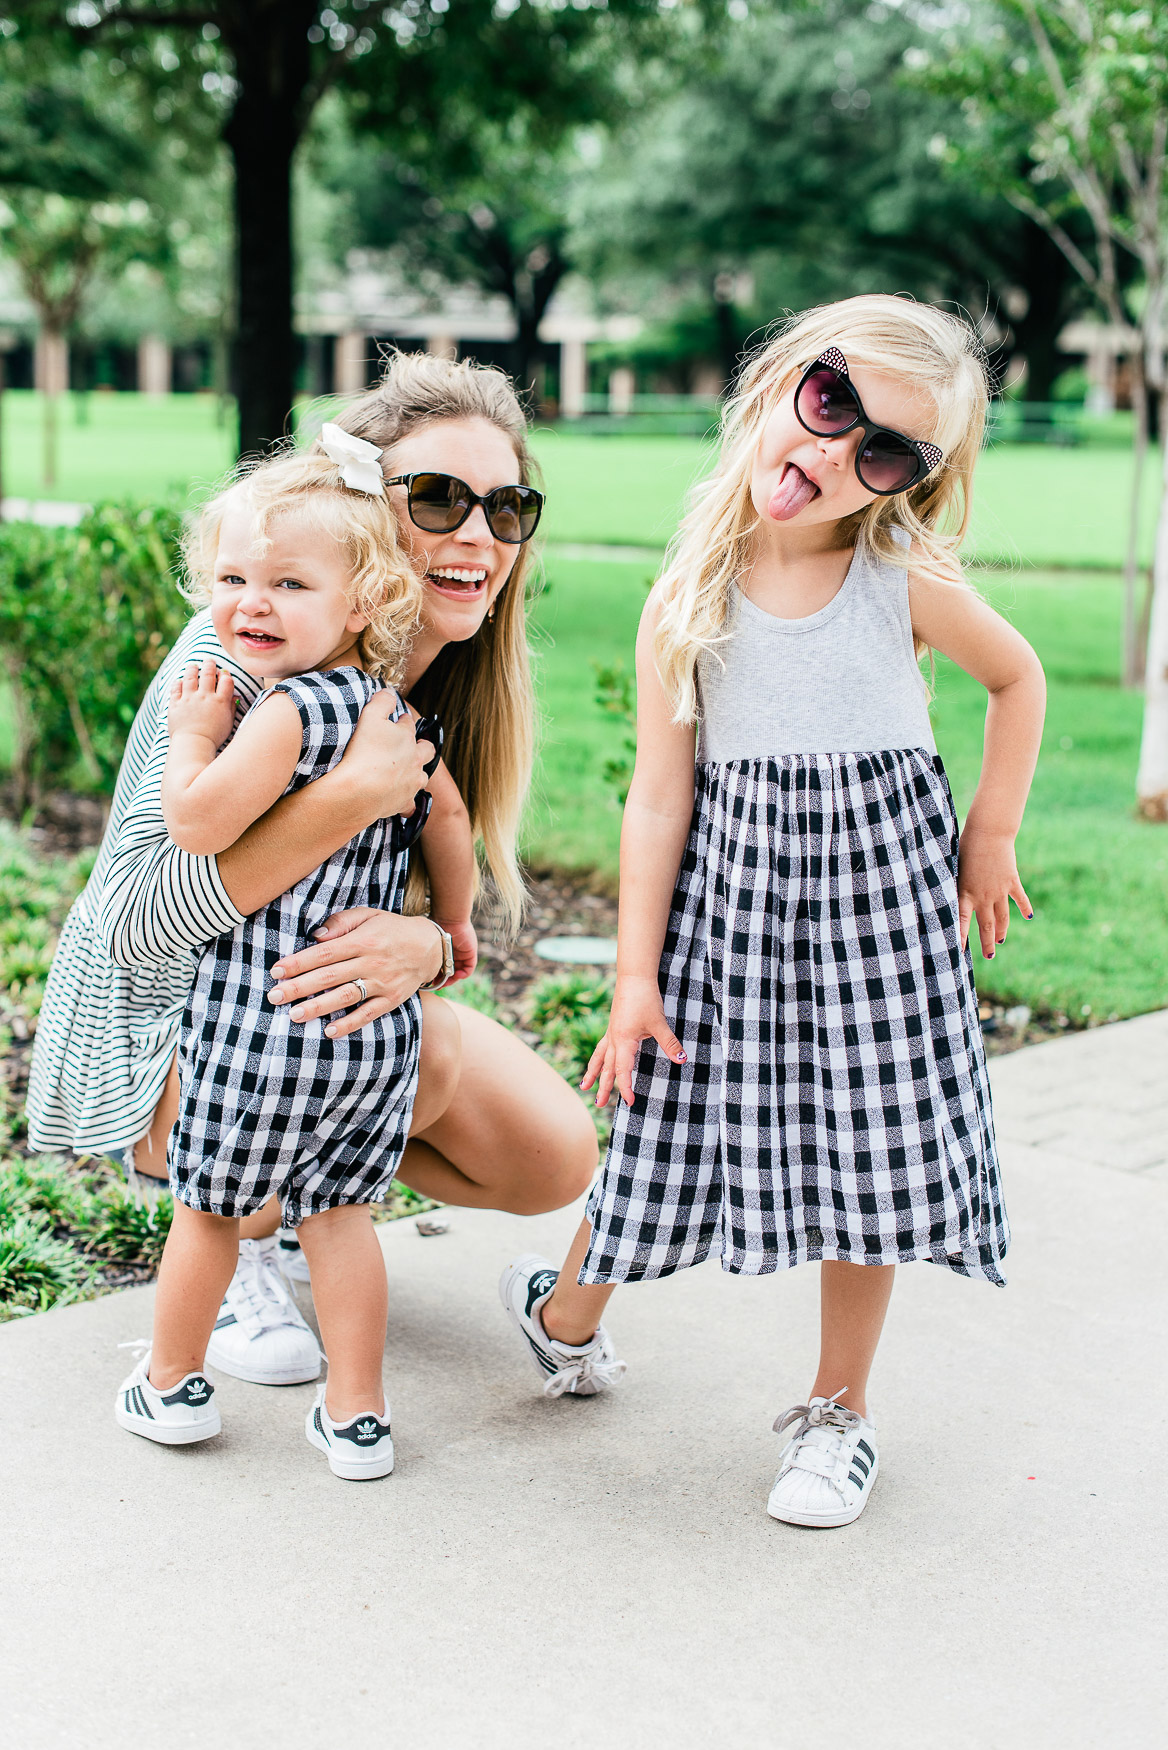 Black and White Gingham Nordstrom Toddler Tucker + Tate Outfits